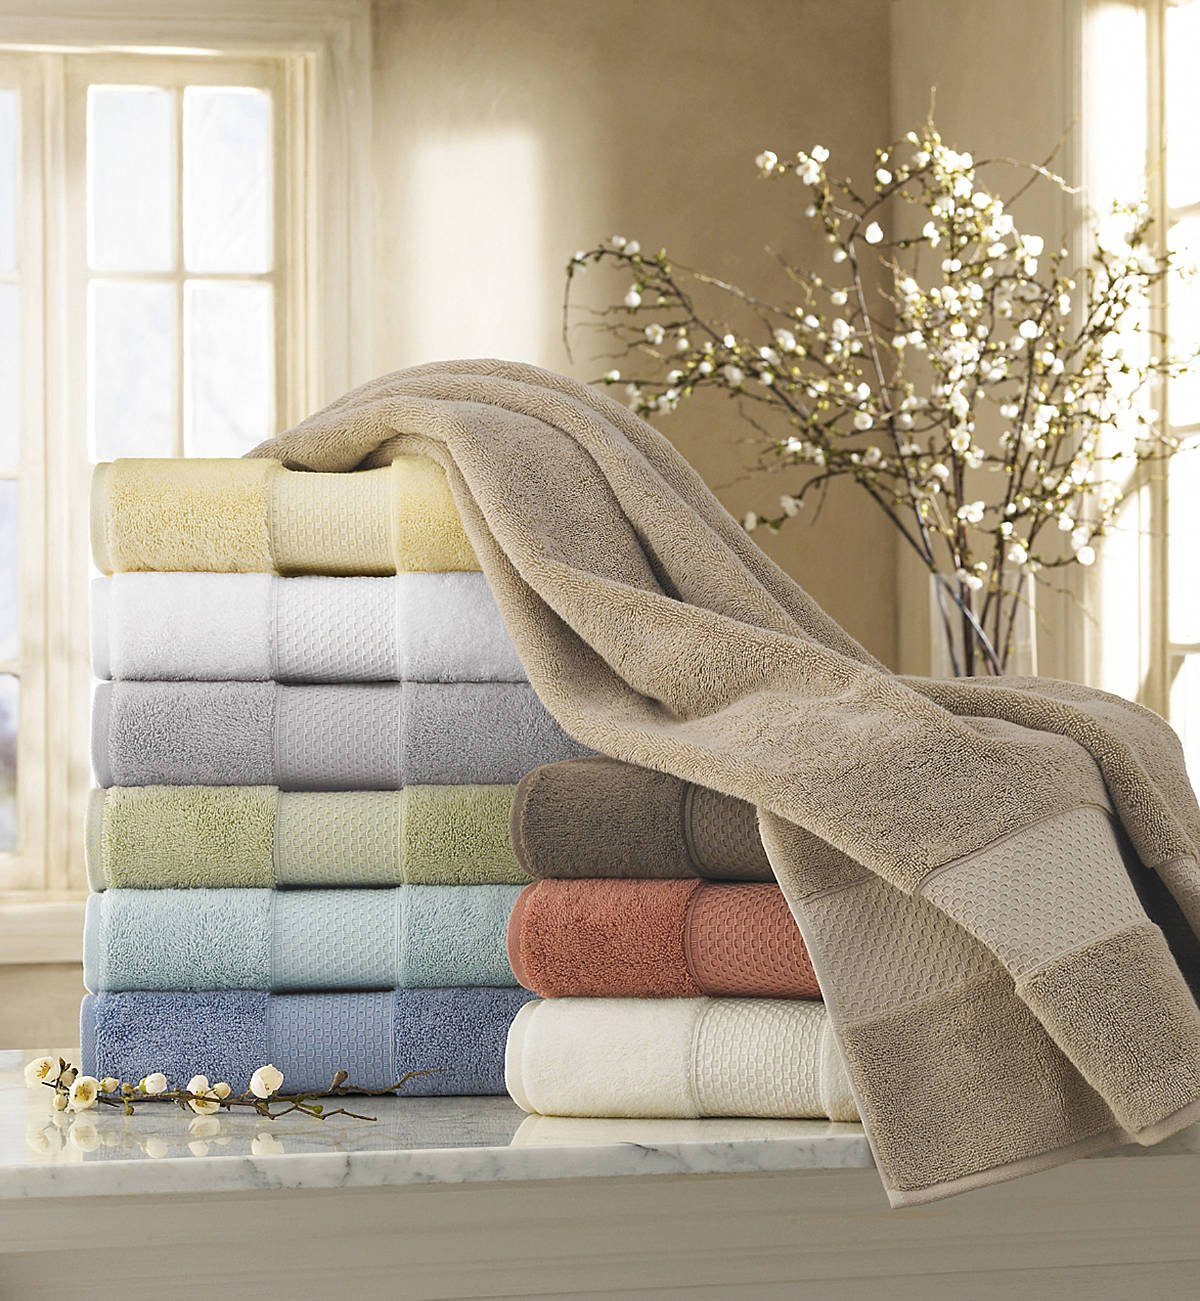 Luxor Linens - 6-Piece Bath Towel Set - Mariabella Collection - Luxurious Super Soft & Fade Resistant 100% Turkish Cotton -Available in Various Colors & 7 Different Embroidery Styles by Luxor Linens (Image #2)